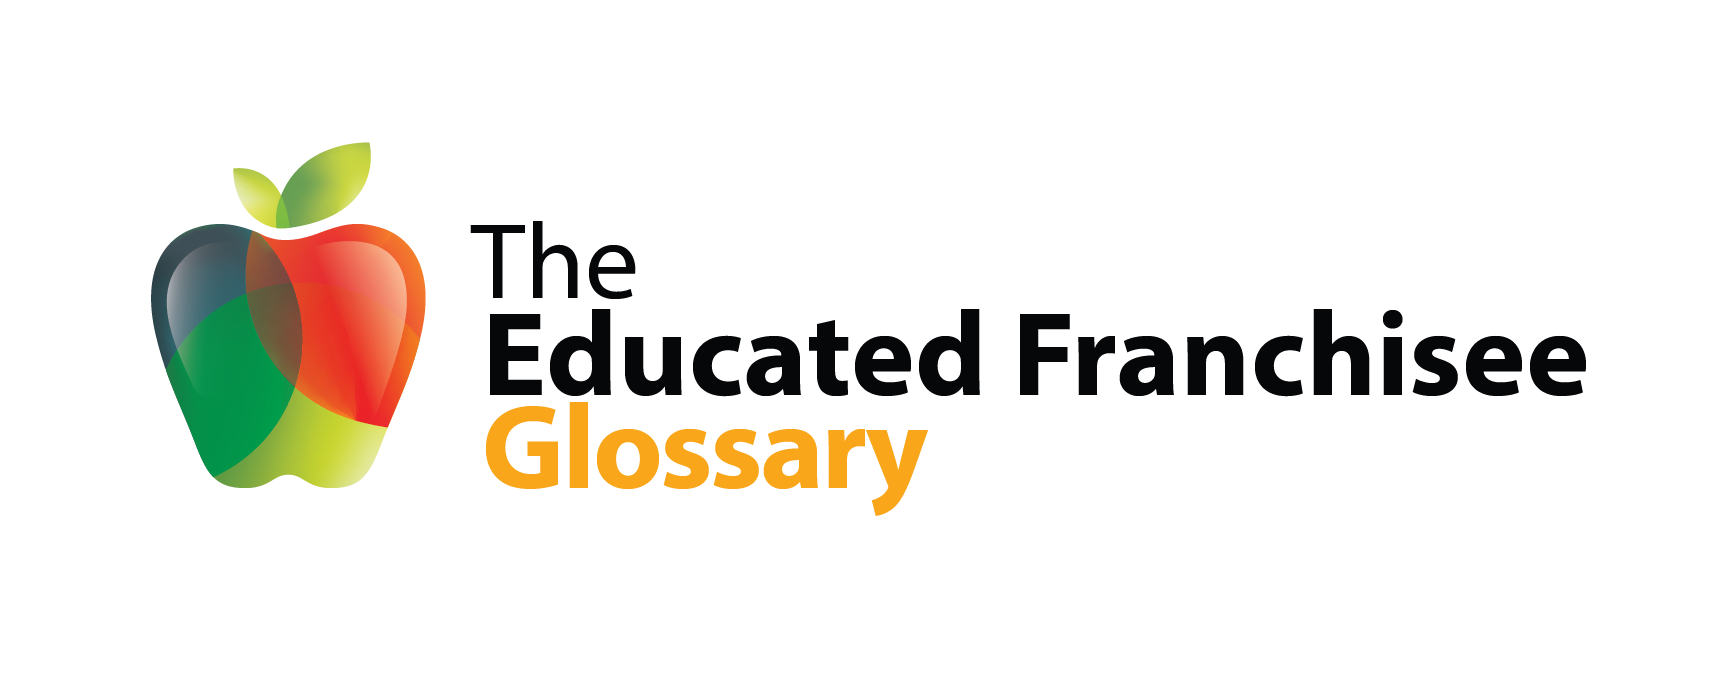 Educated Franchisee Glossary Website